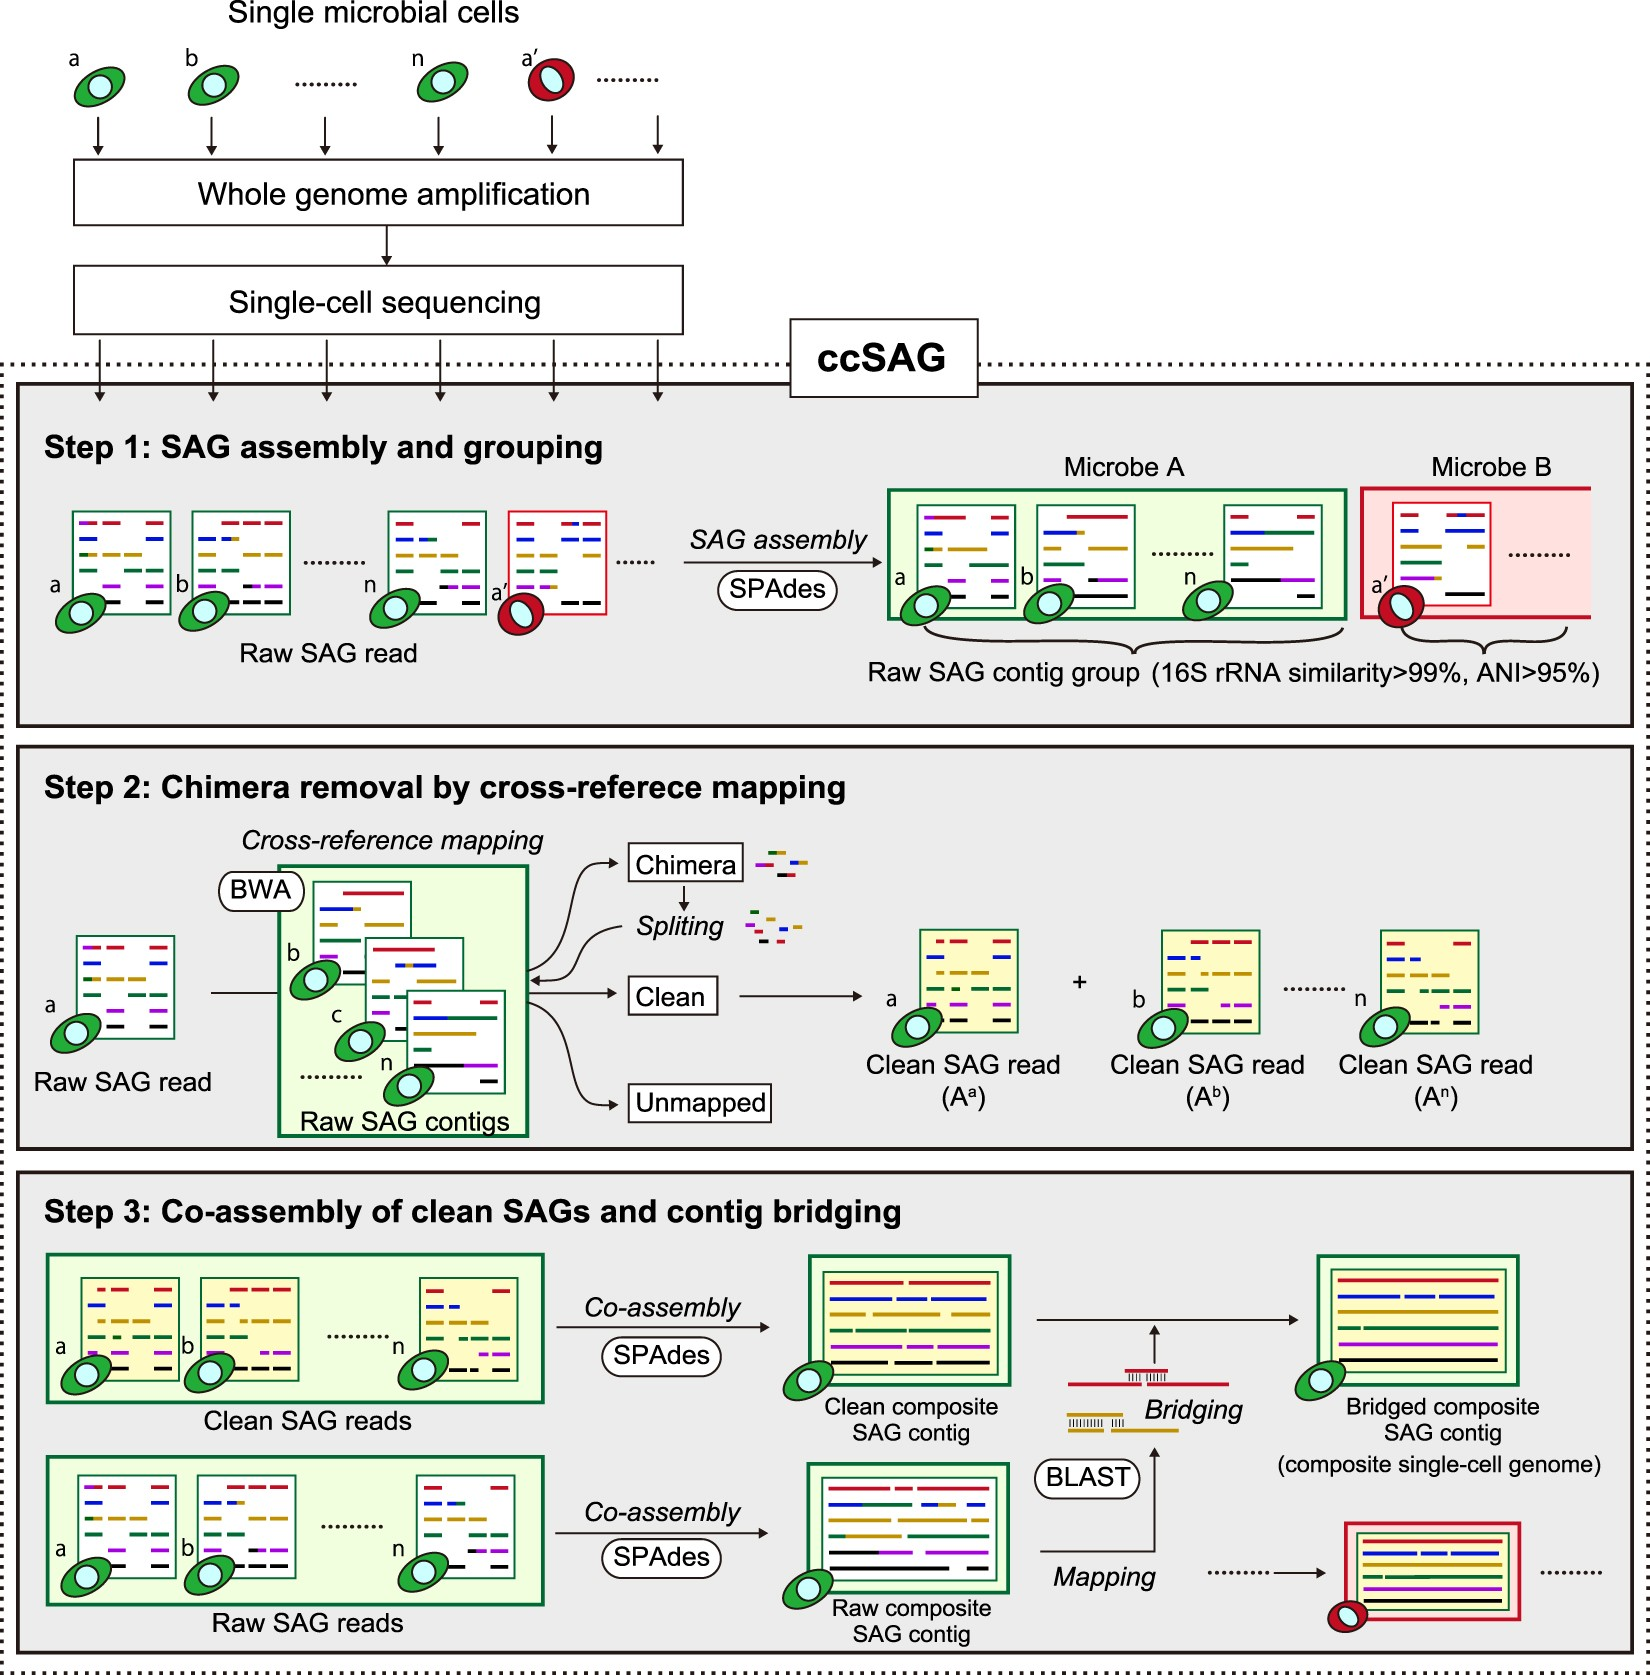 Obtaining high-quality draft genomes from uncultured microbes by